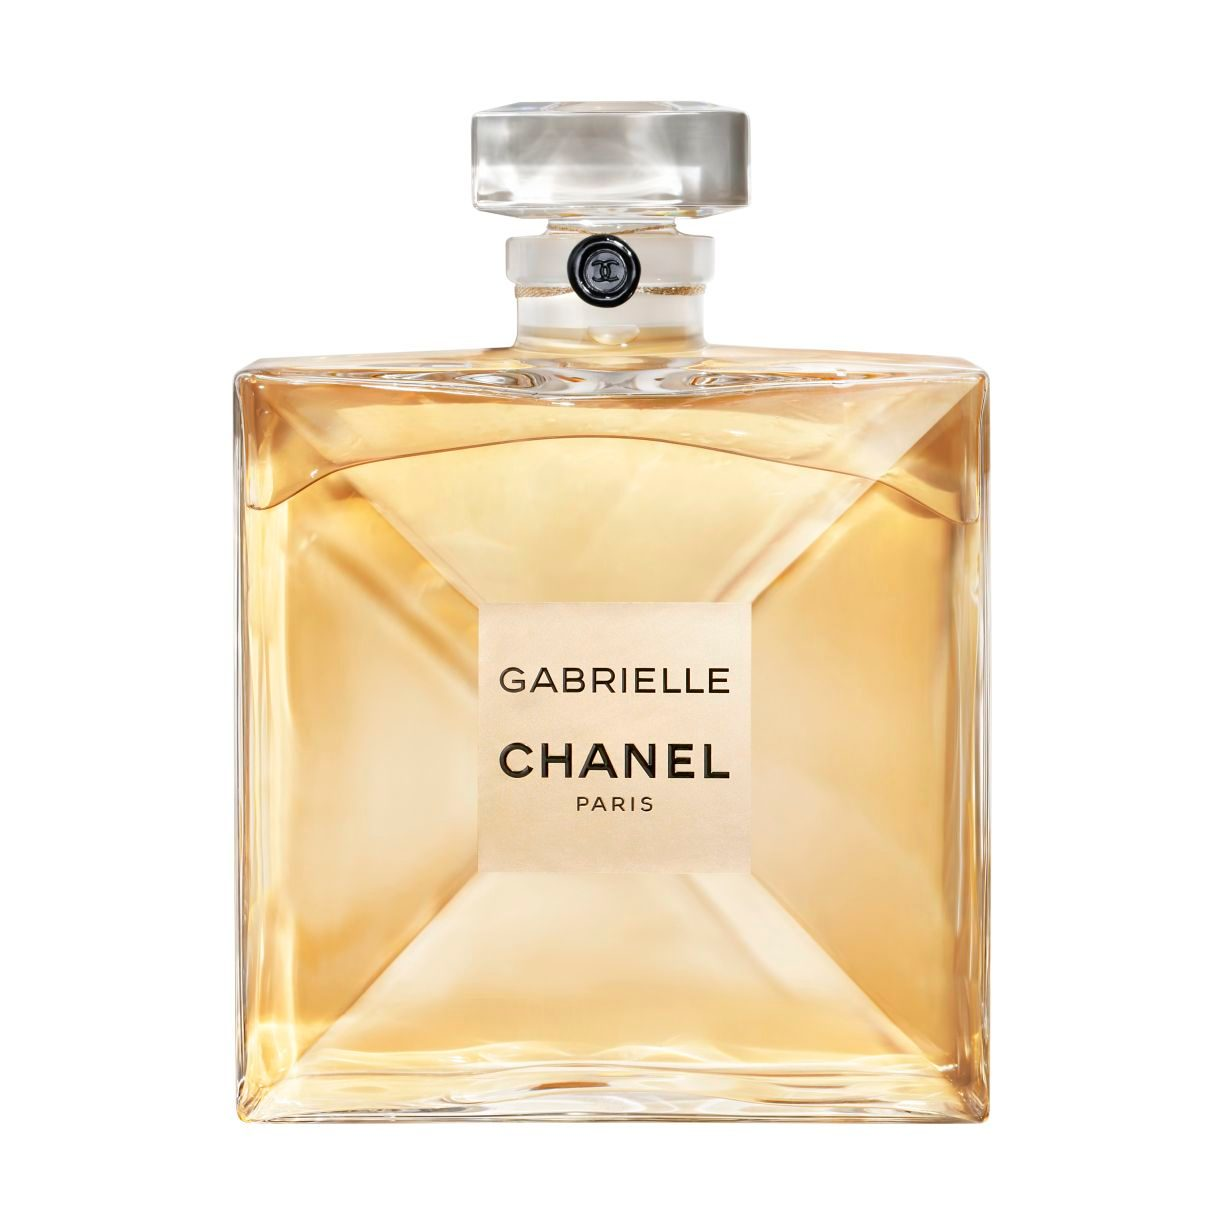 GABRIELLE CHANEL Exceptional edition of GABRIELLE CHANEL Eau de Parfum